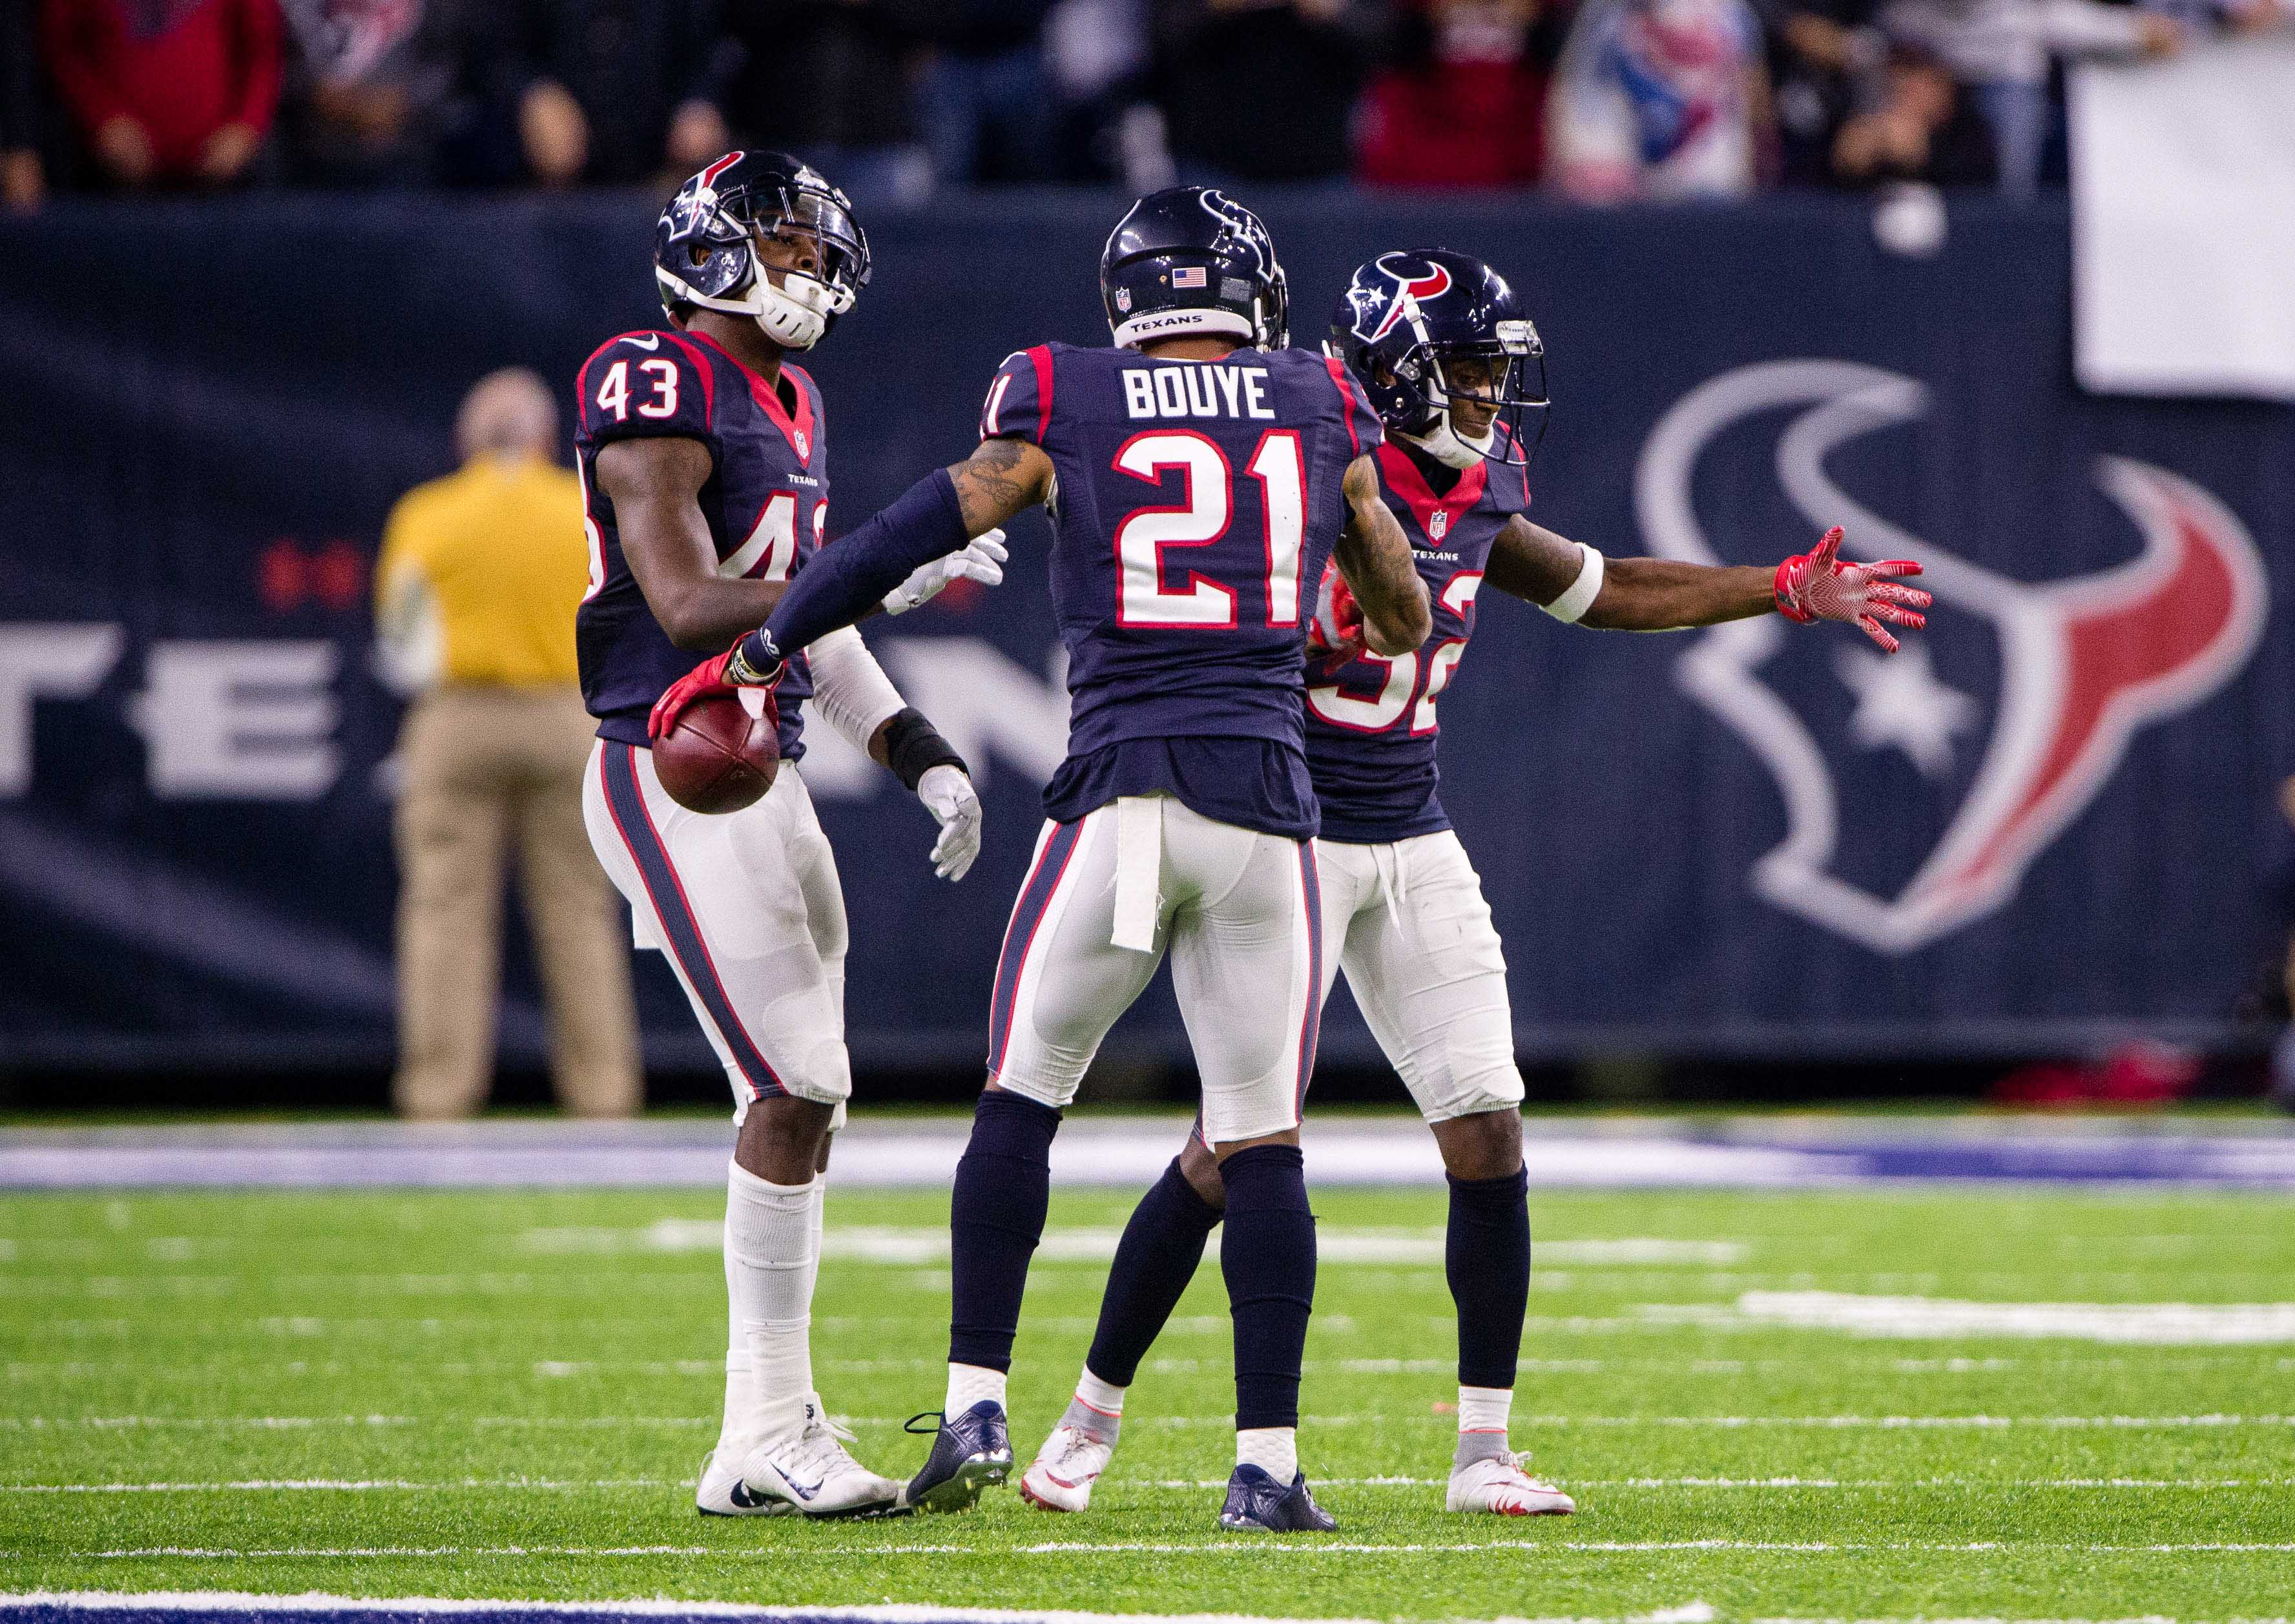 9805528-nfl-afc-wild-card-oakland-raiders-at-houston-texans